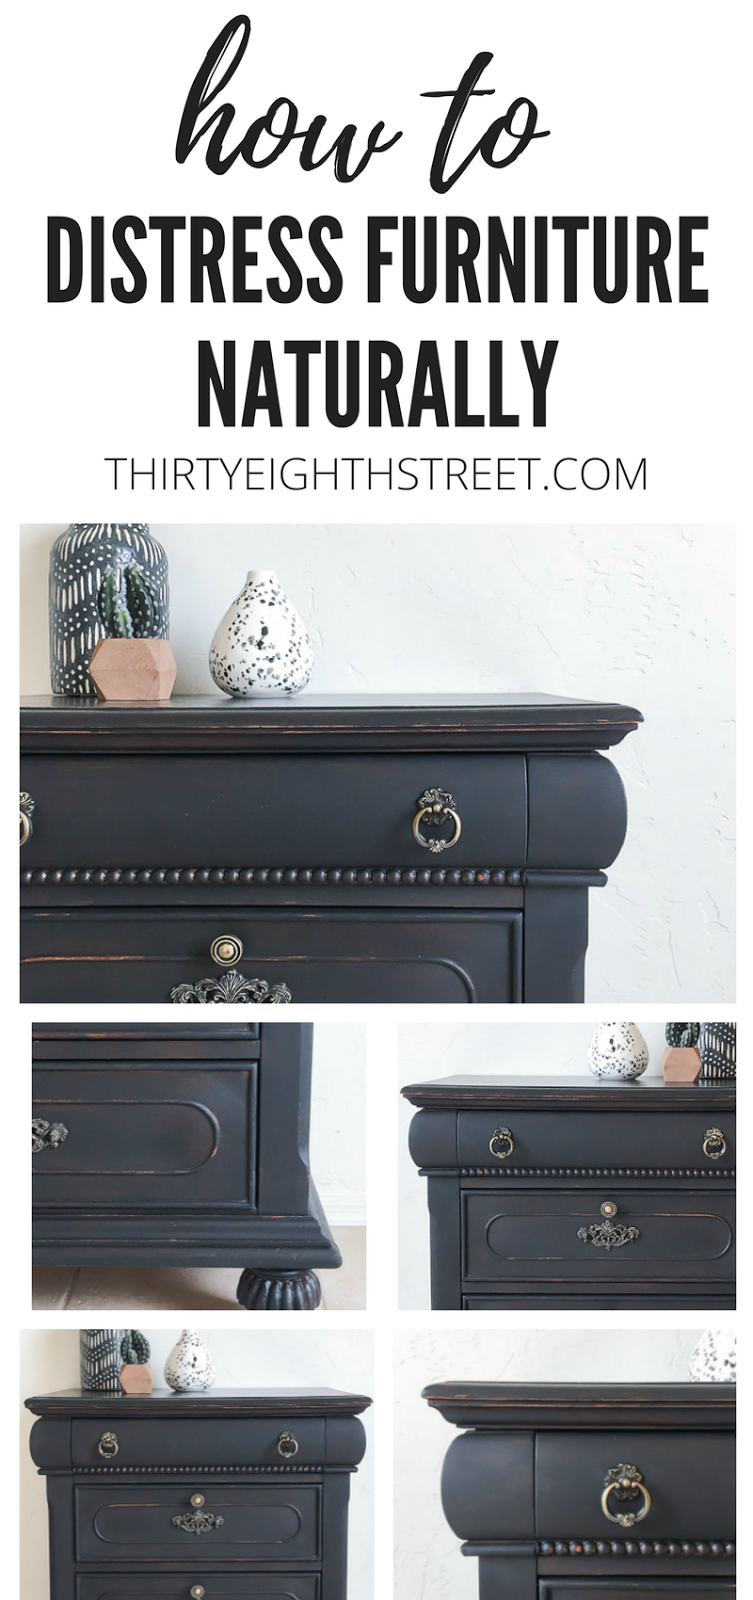 diy furniture refinishing projects. Fool Proof Furniture Distressing Techniques For A Natural Worn Finish Diy Refinishing Projects